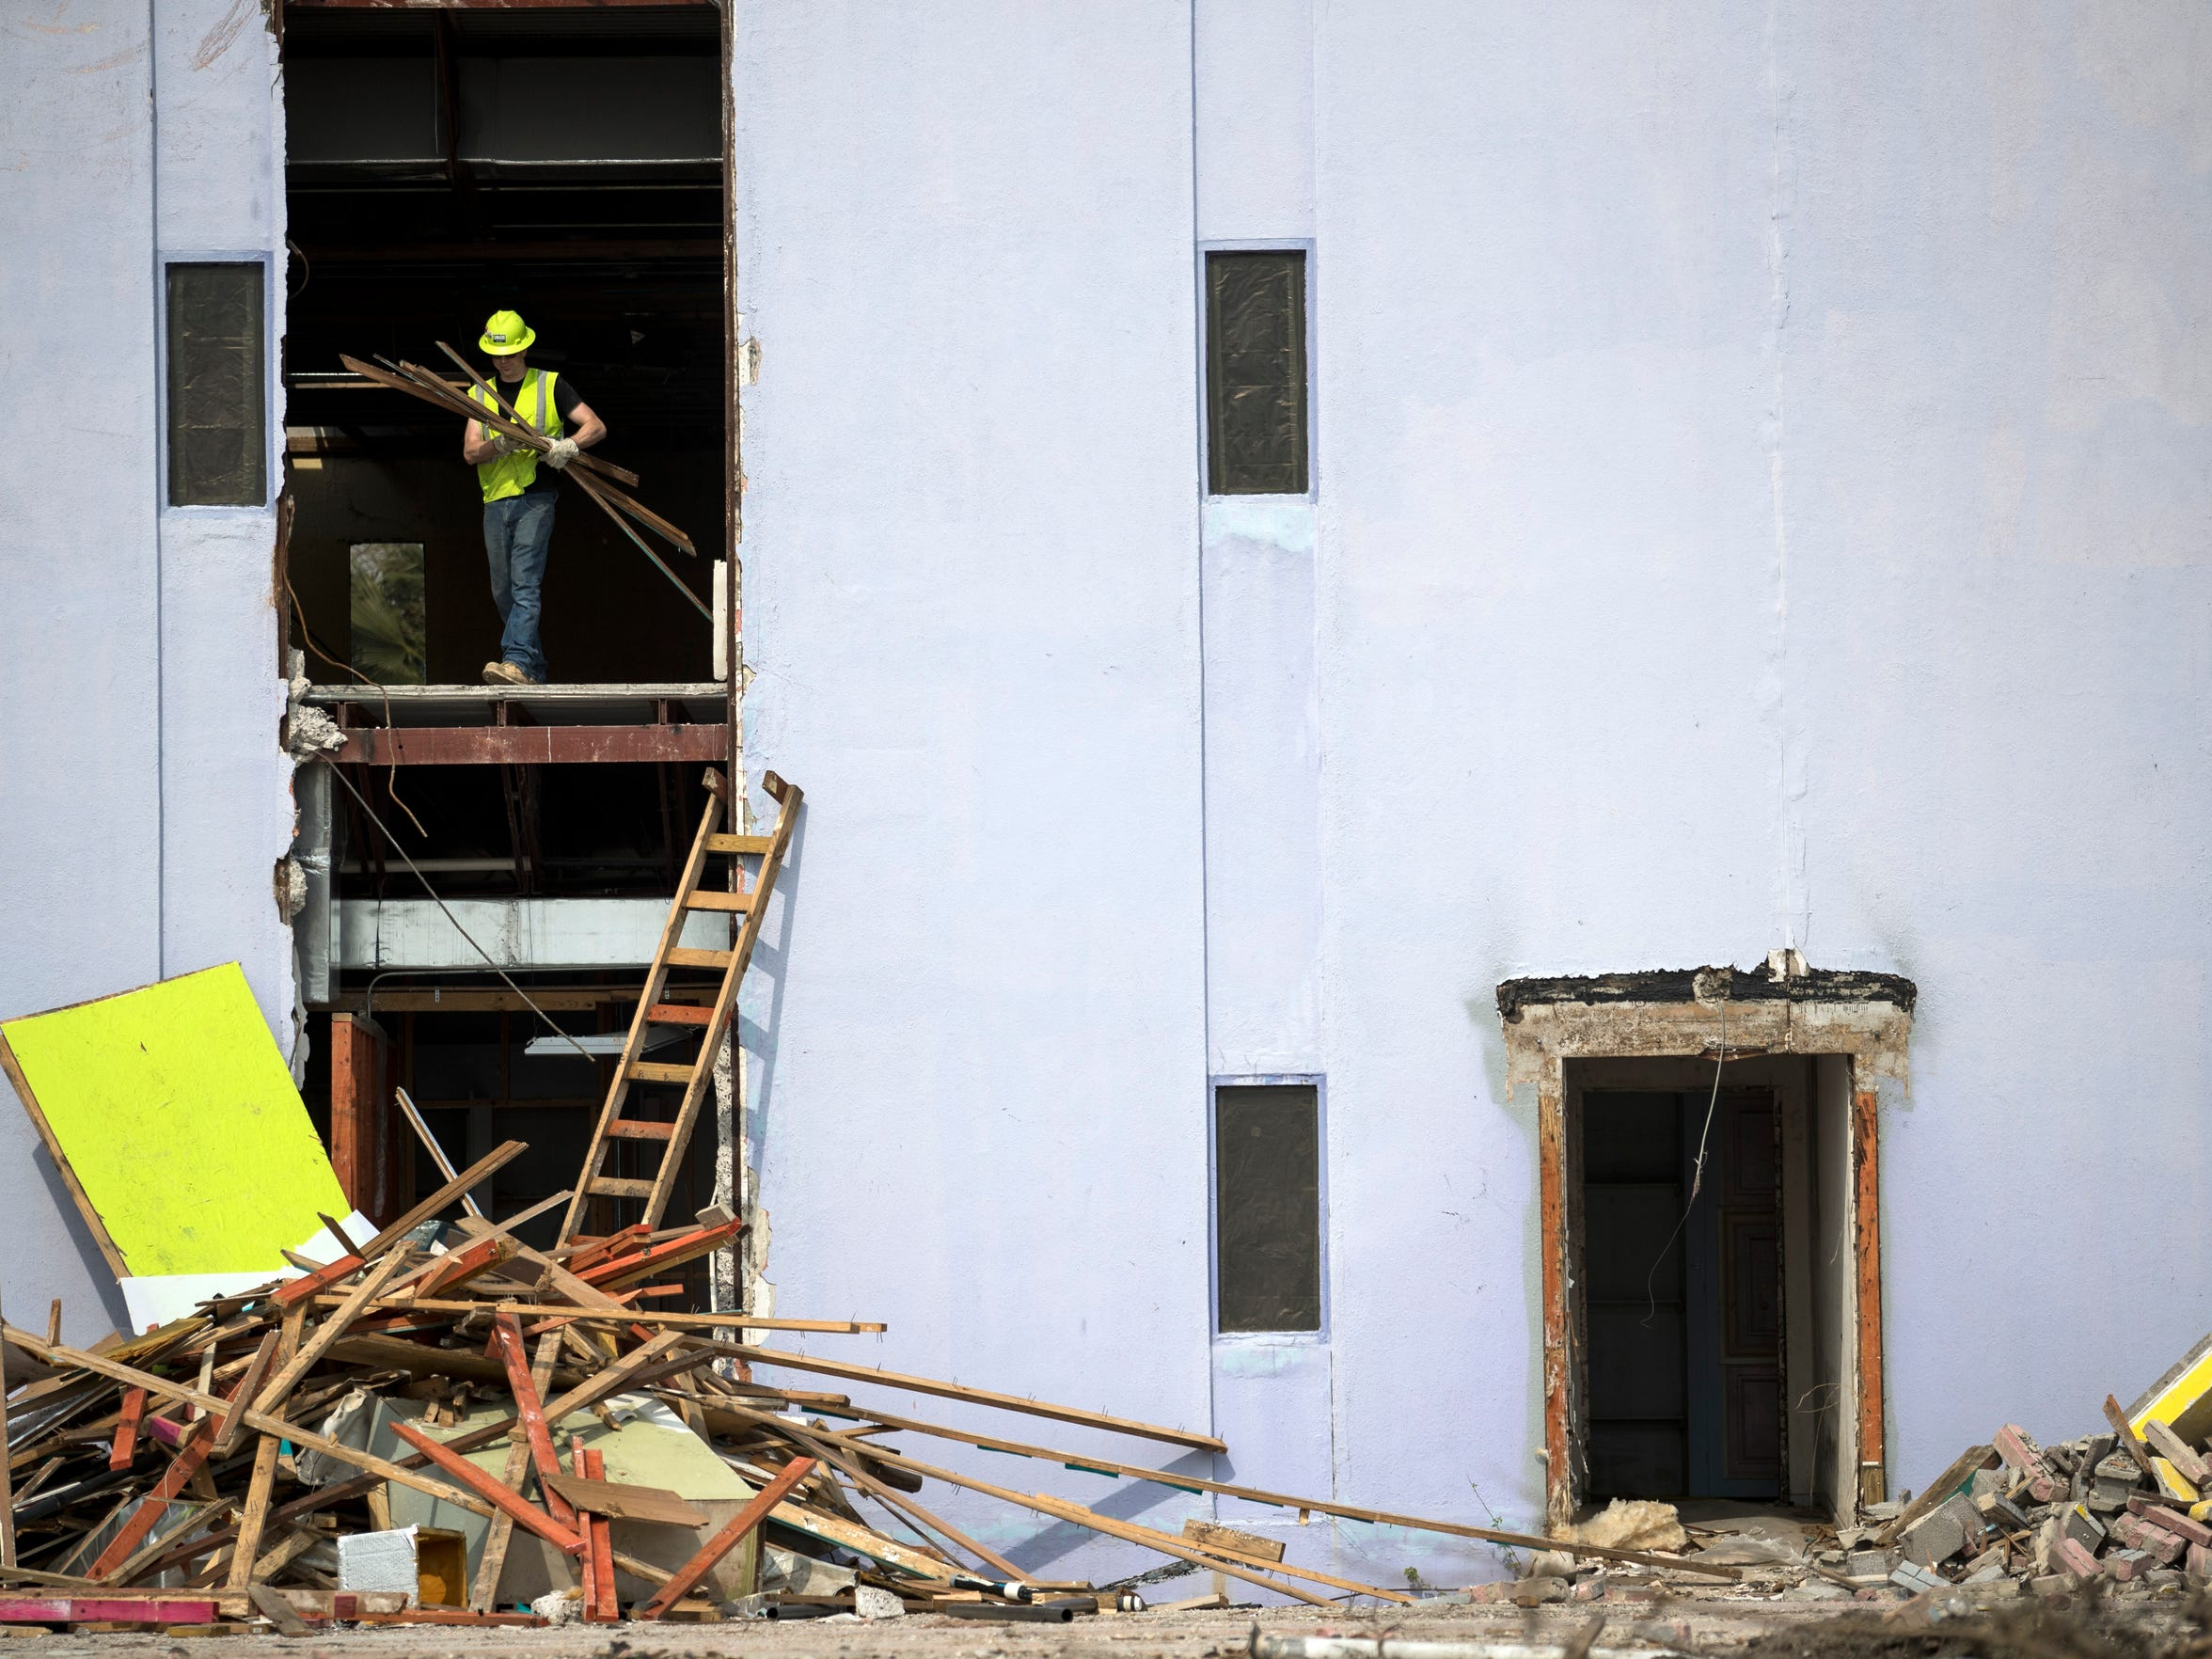 Contractors work to demolish the a building in downtown Rockport on Thursday Feb.22, 2018.